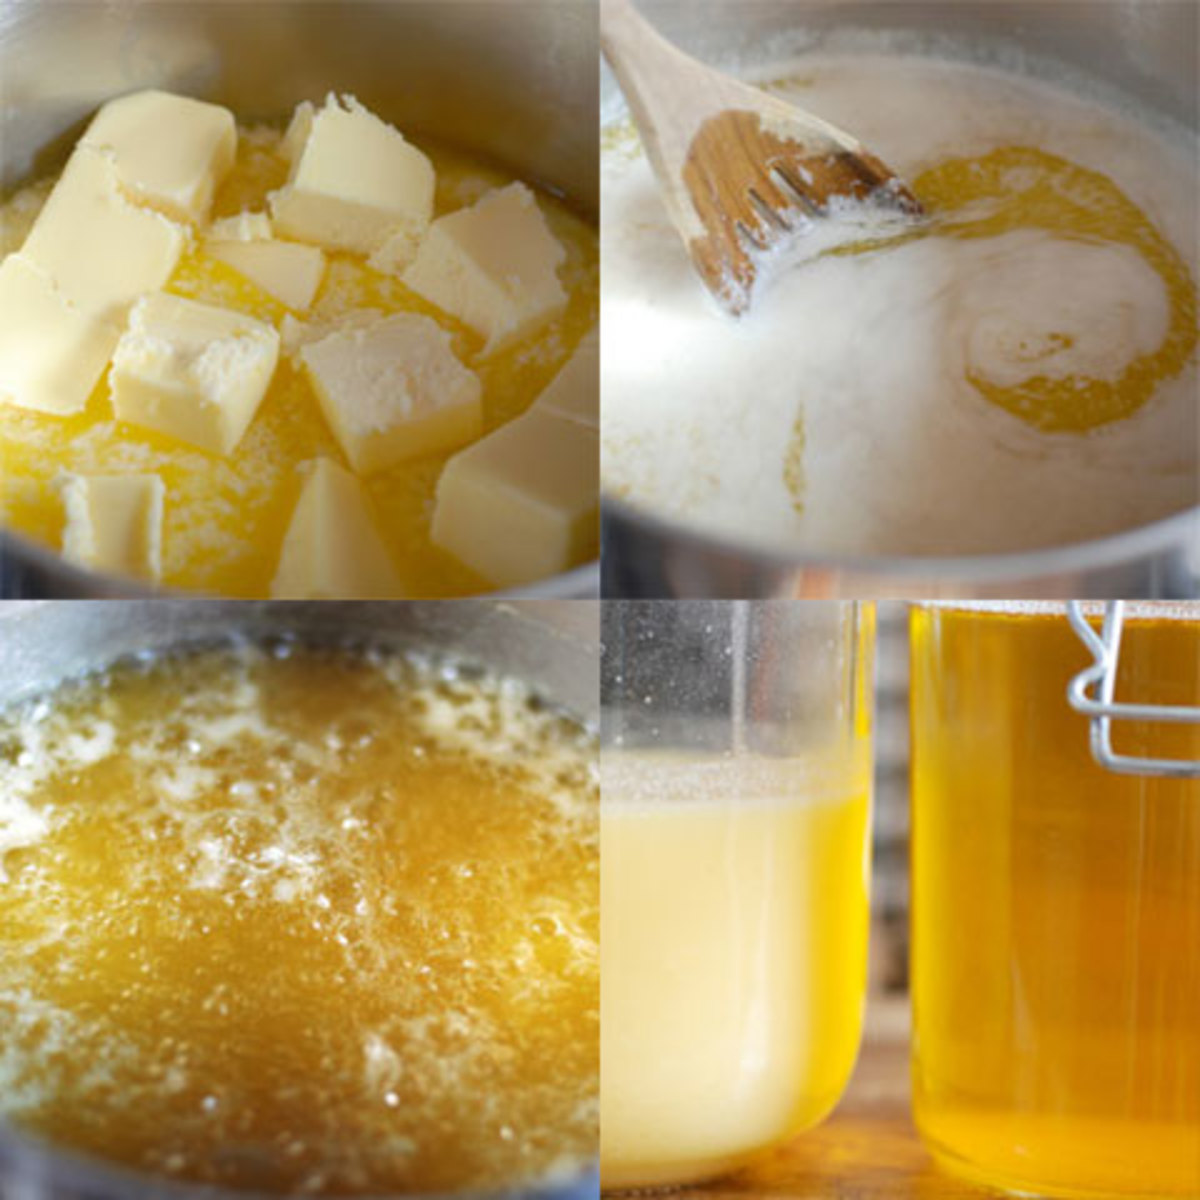 Ghee, known as samna in Egypt